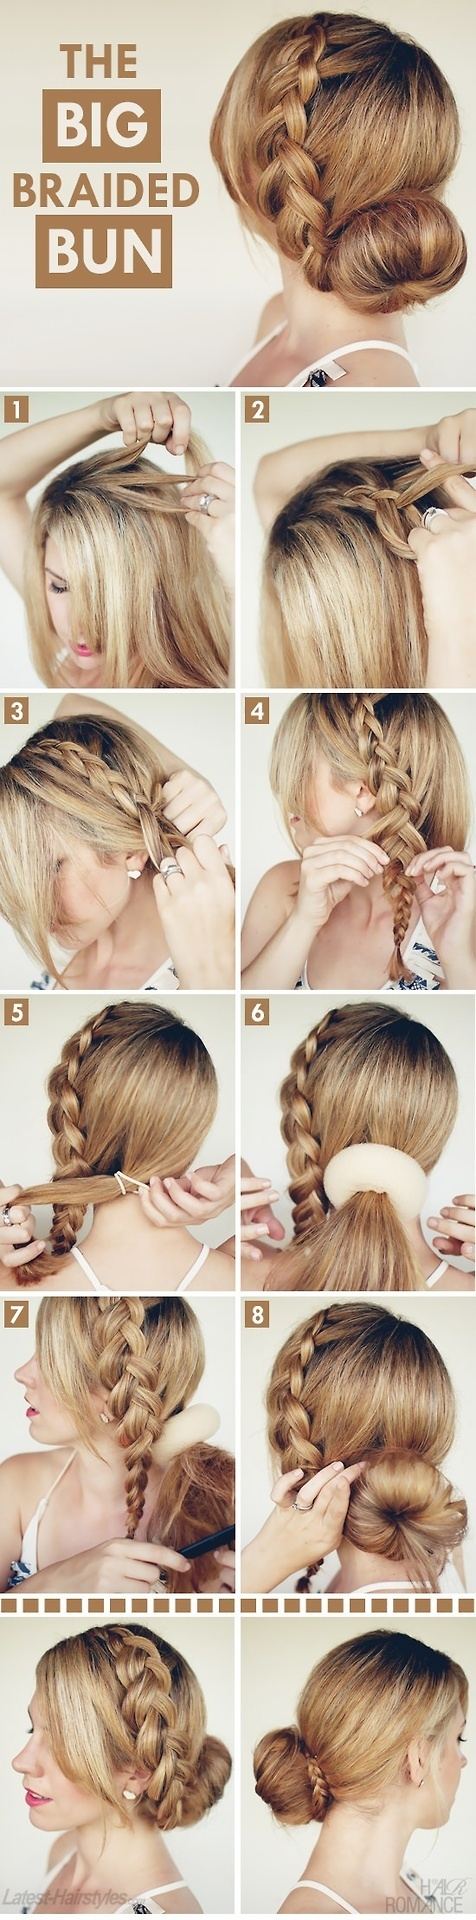 15 Stylish Buns For Your Long Hair Pretty Designs